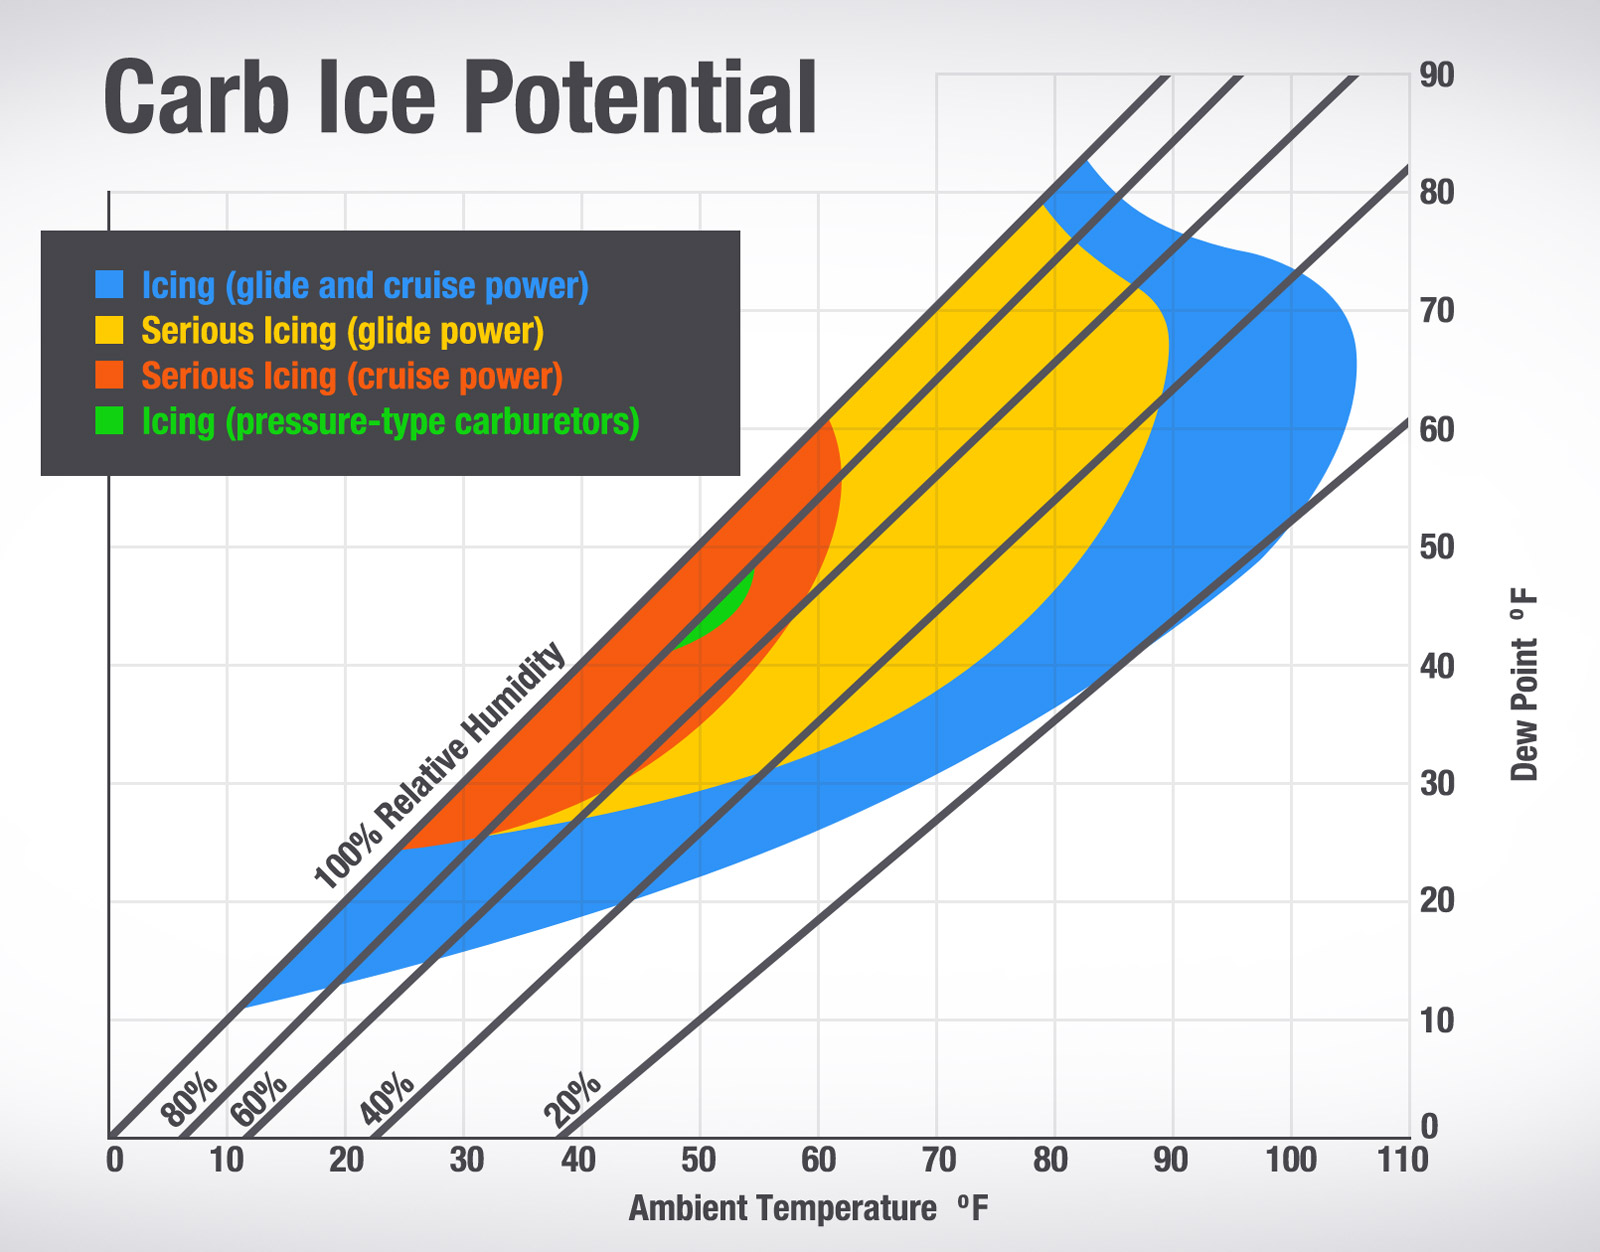 carb-ice-potential-chart